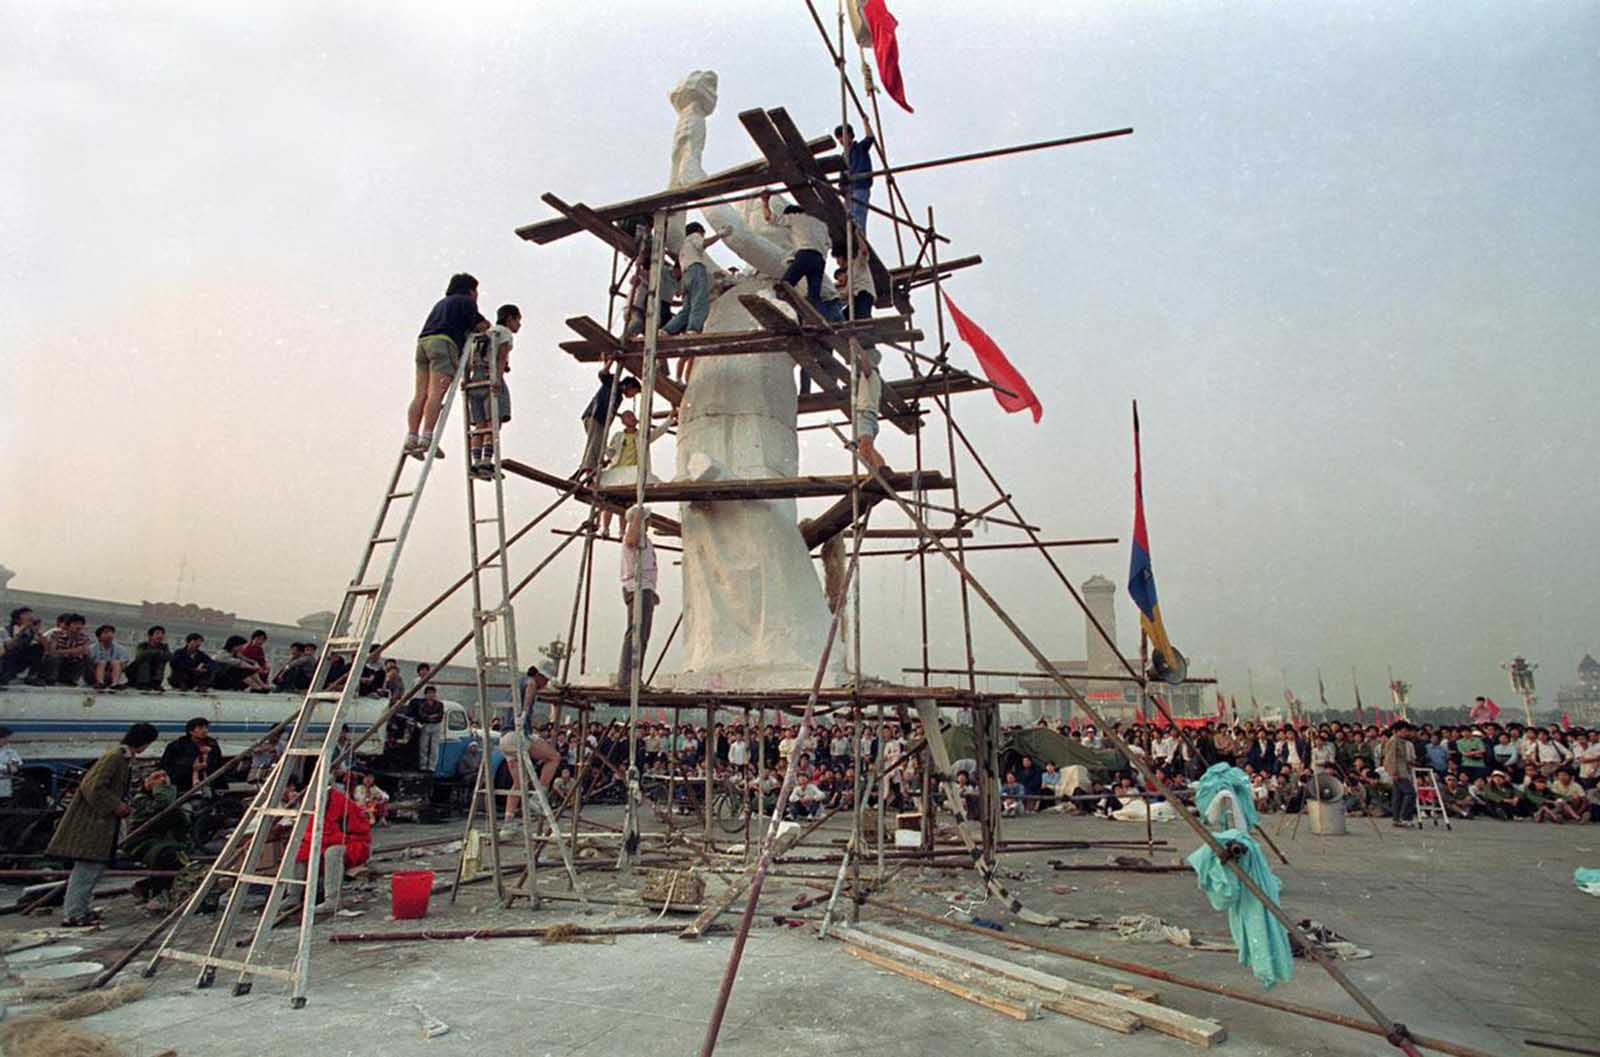 Beijing University students put the finishing touches on the Goddess of Democracy in Tiananmen Square, on May 30, 1989.